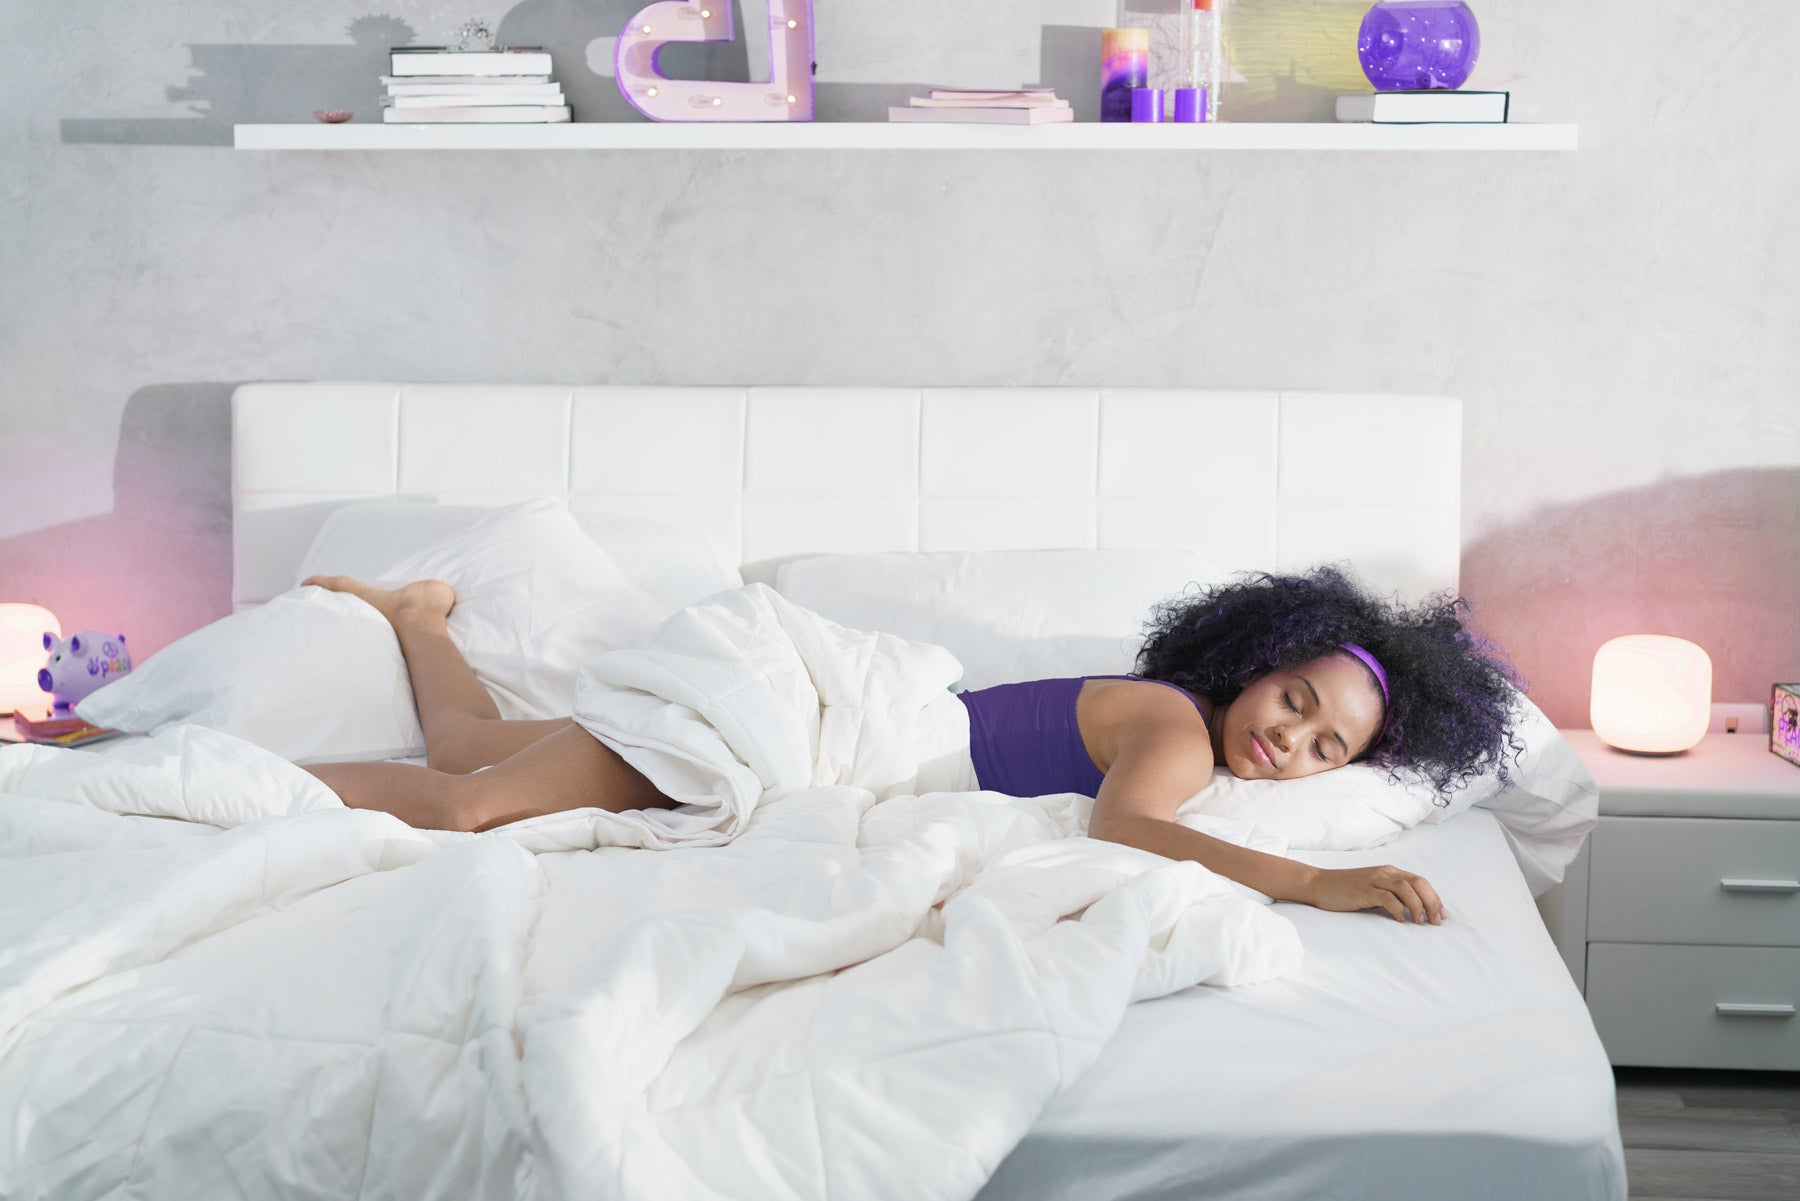 woman in purple tank top sleeps sideways on bed with white sheets